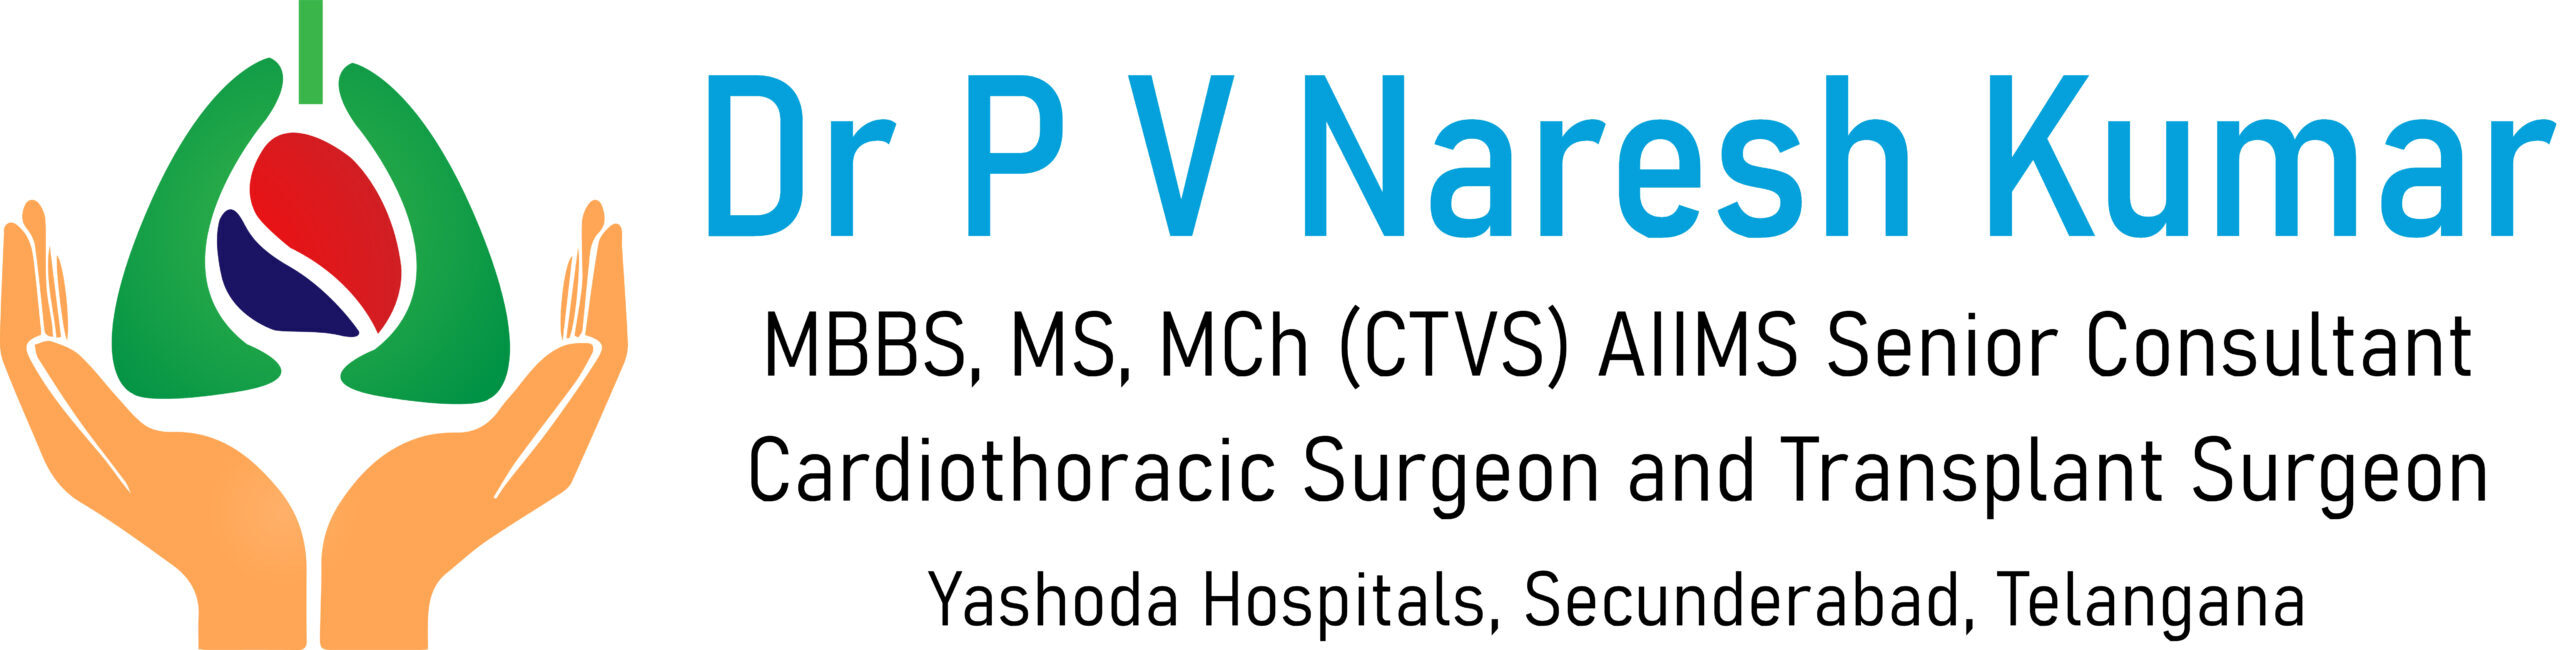 Dr Pv Naresh Best Cardiothoracic And Vascular Surgeon In Hyderabad